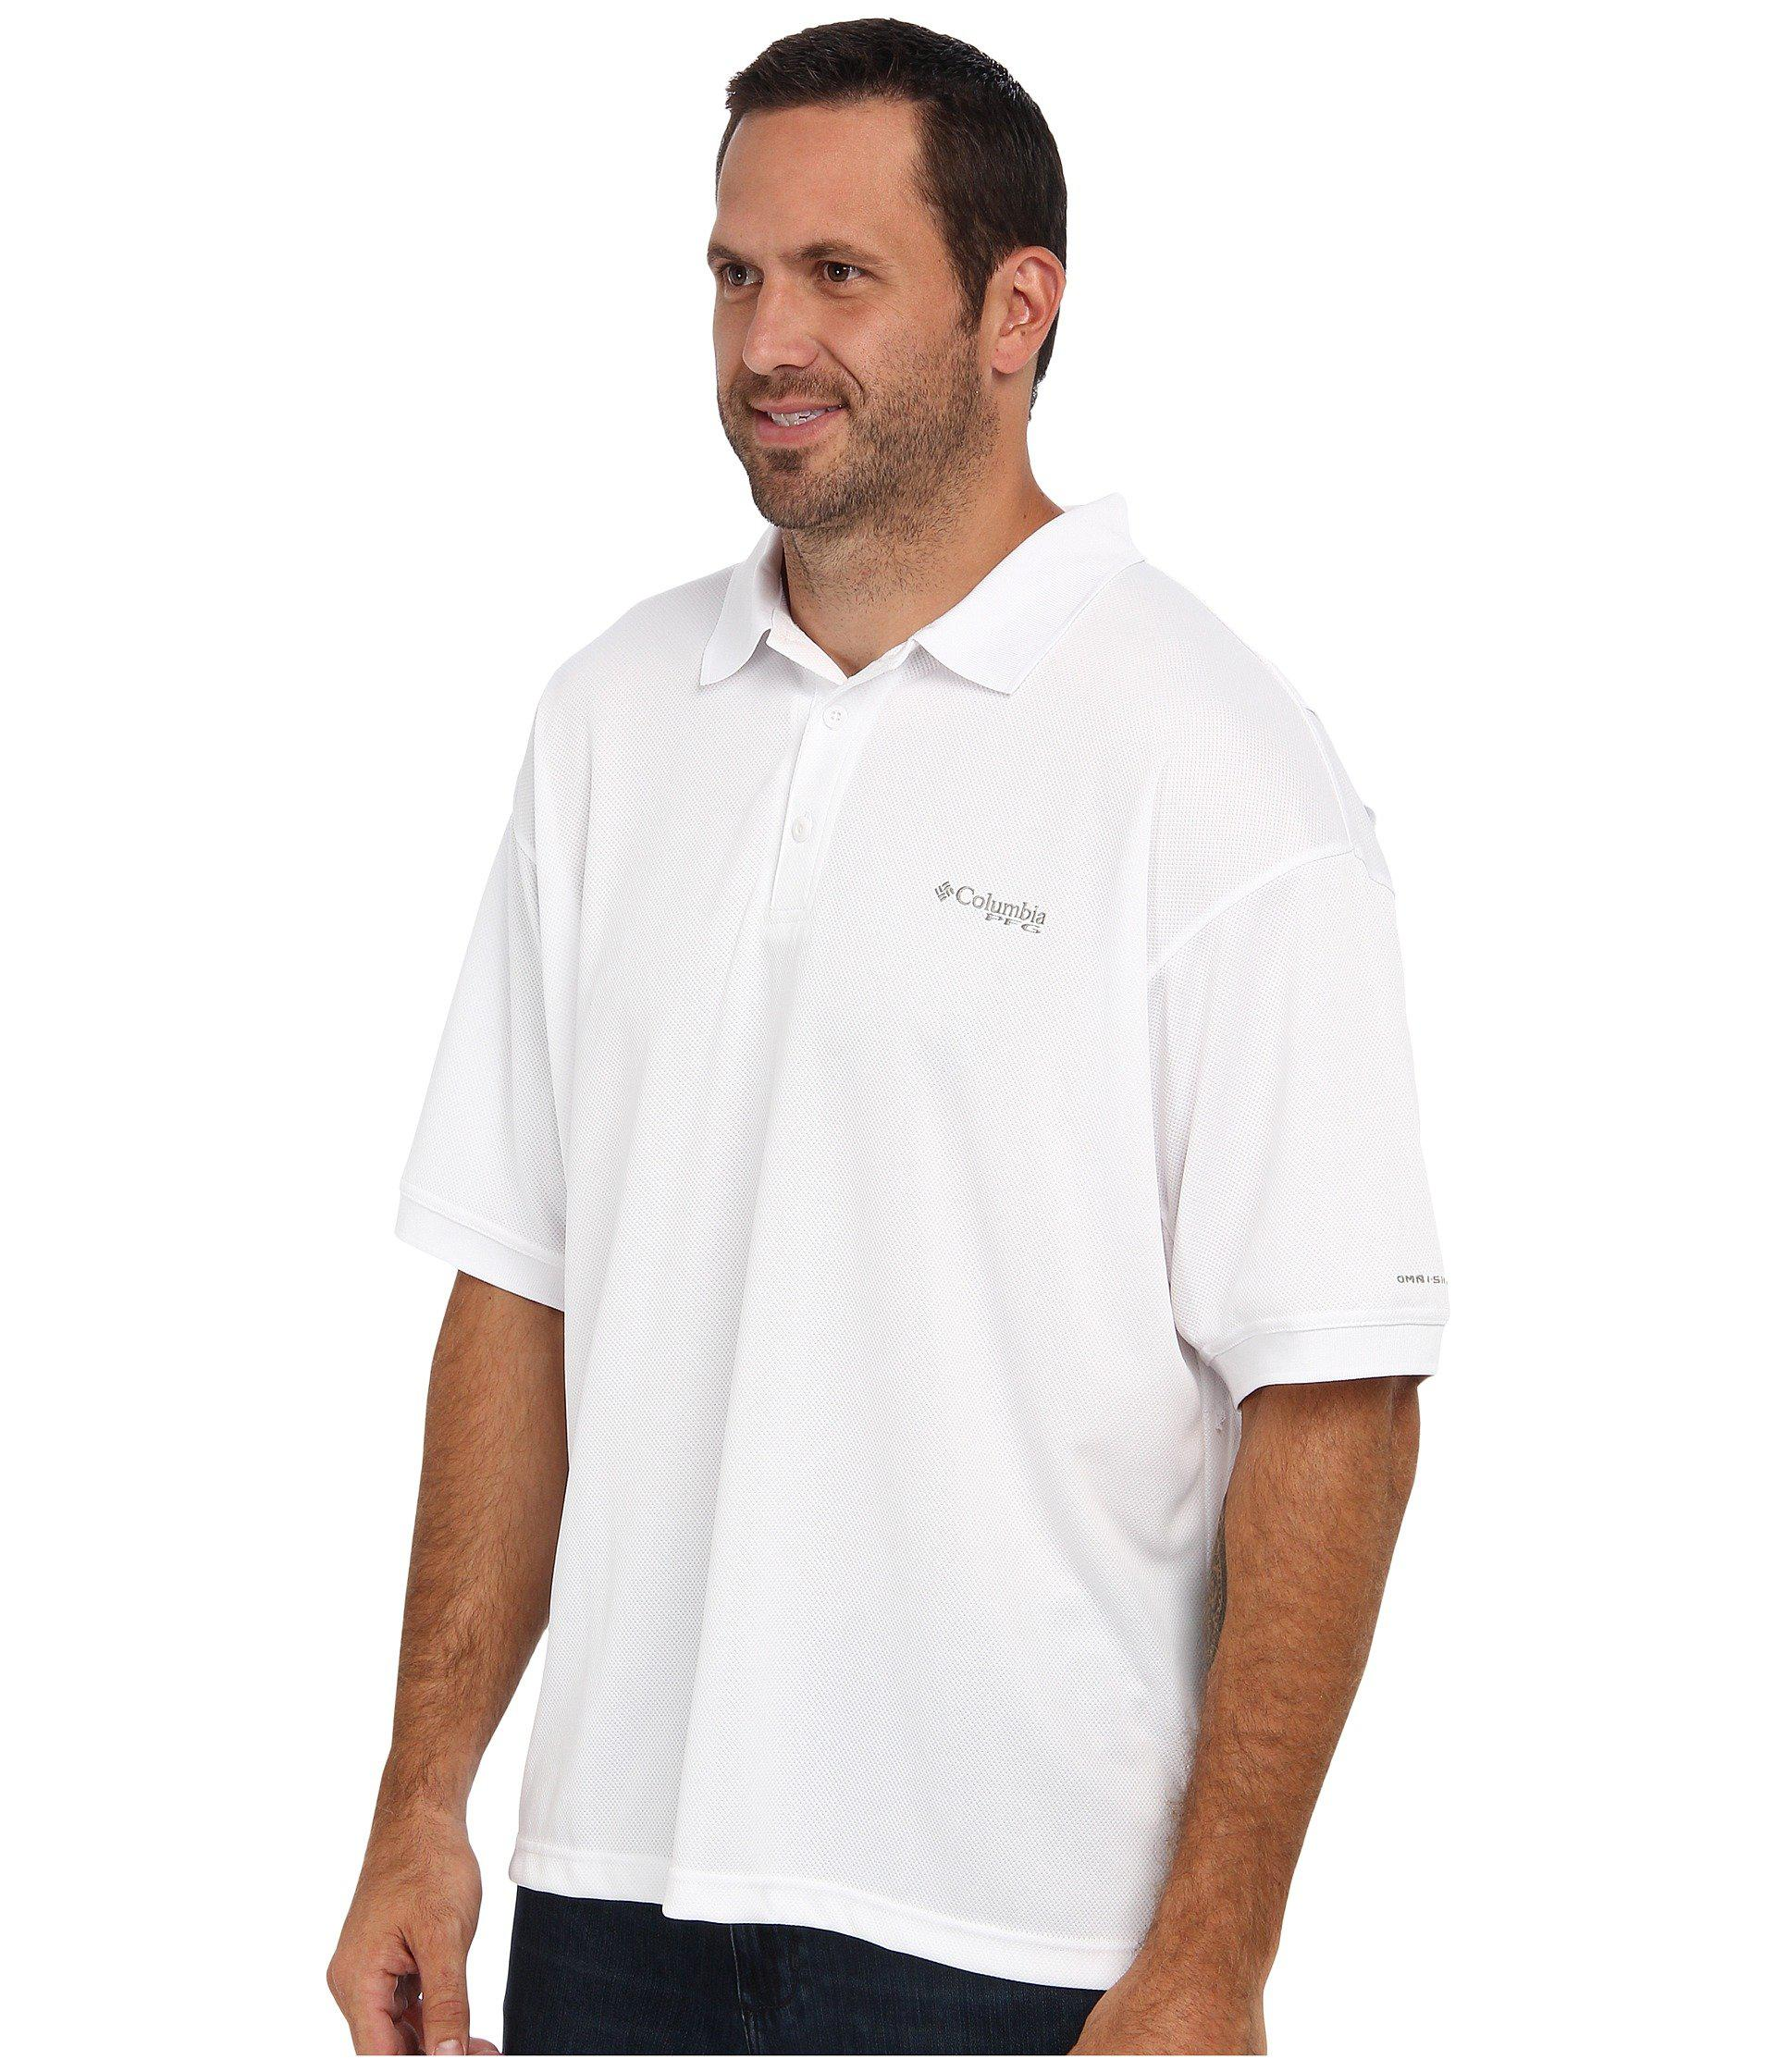 ea7cd2cc5 Lyst - Columbia Big Tall Perfect Casttm Polo (black) Men's Clothing in  White for Men